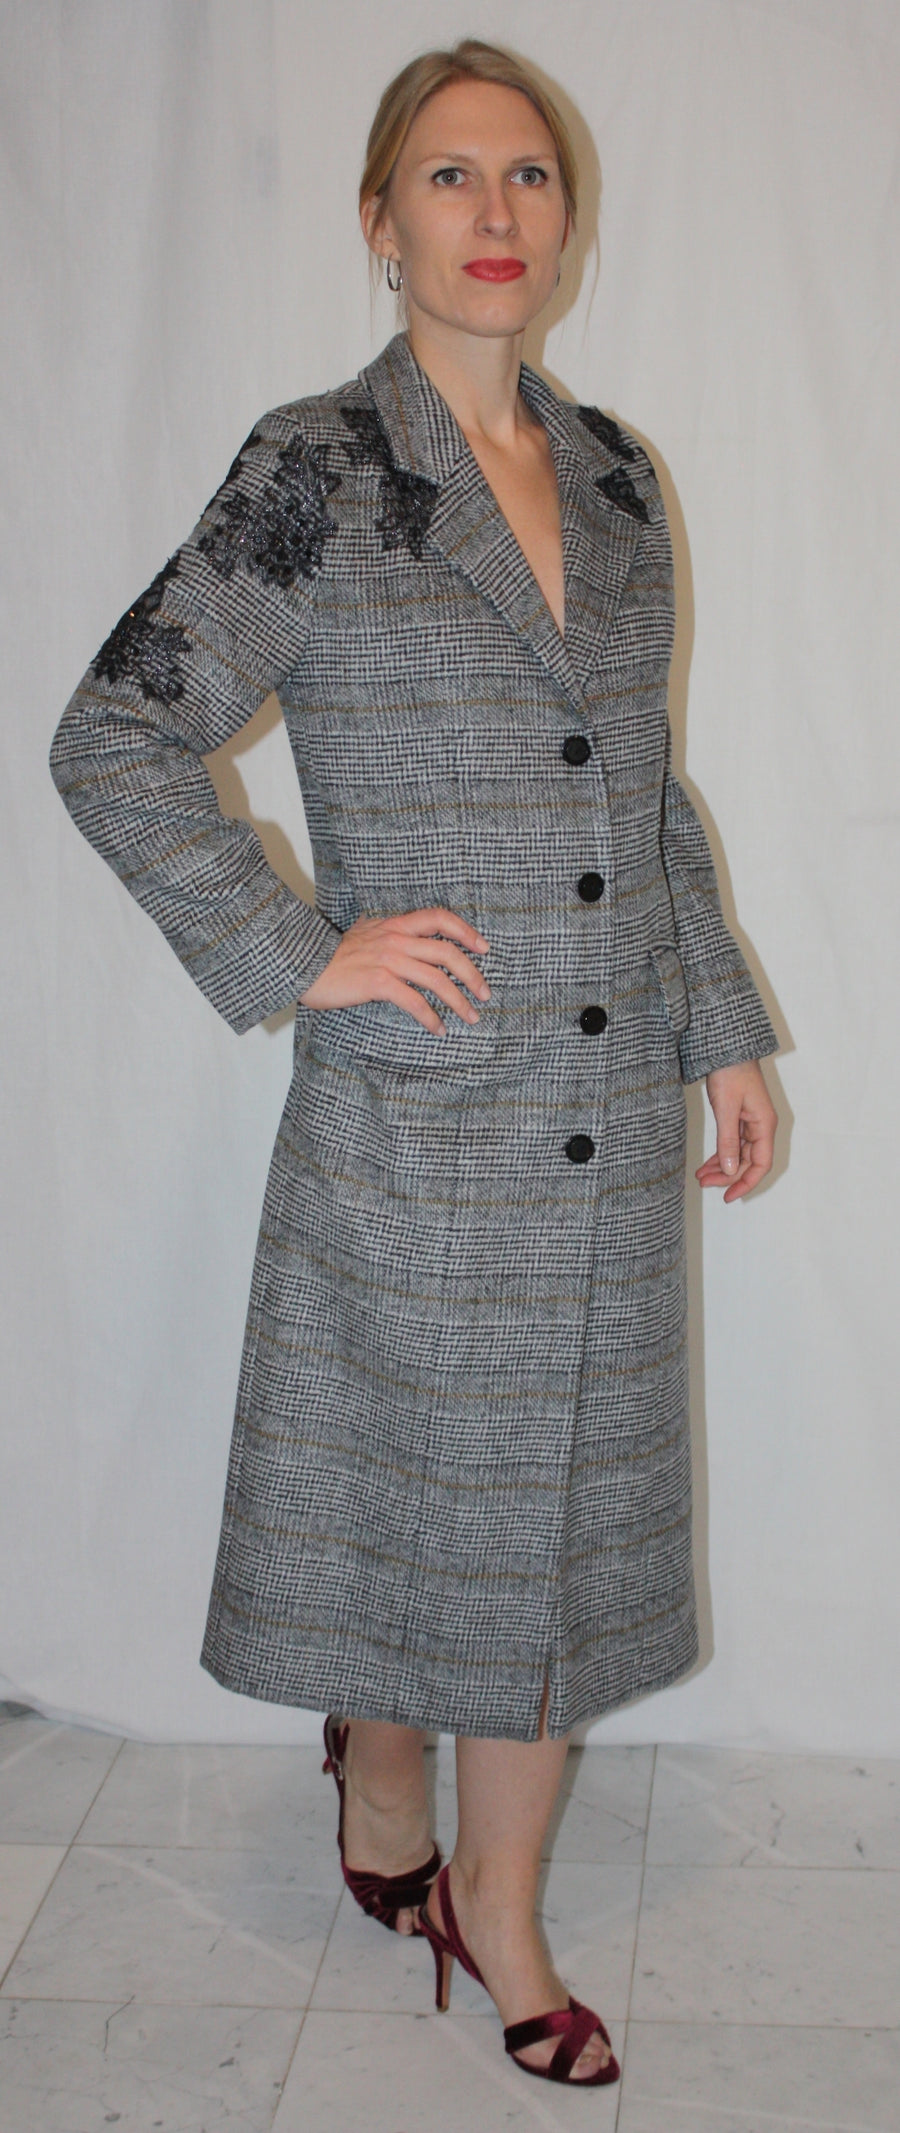 MIXED CASHMIR COAT WITH EMBELLISHMENTS